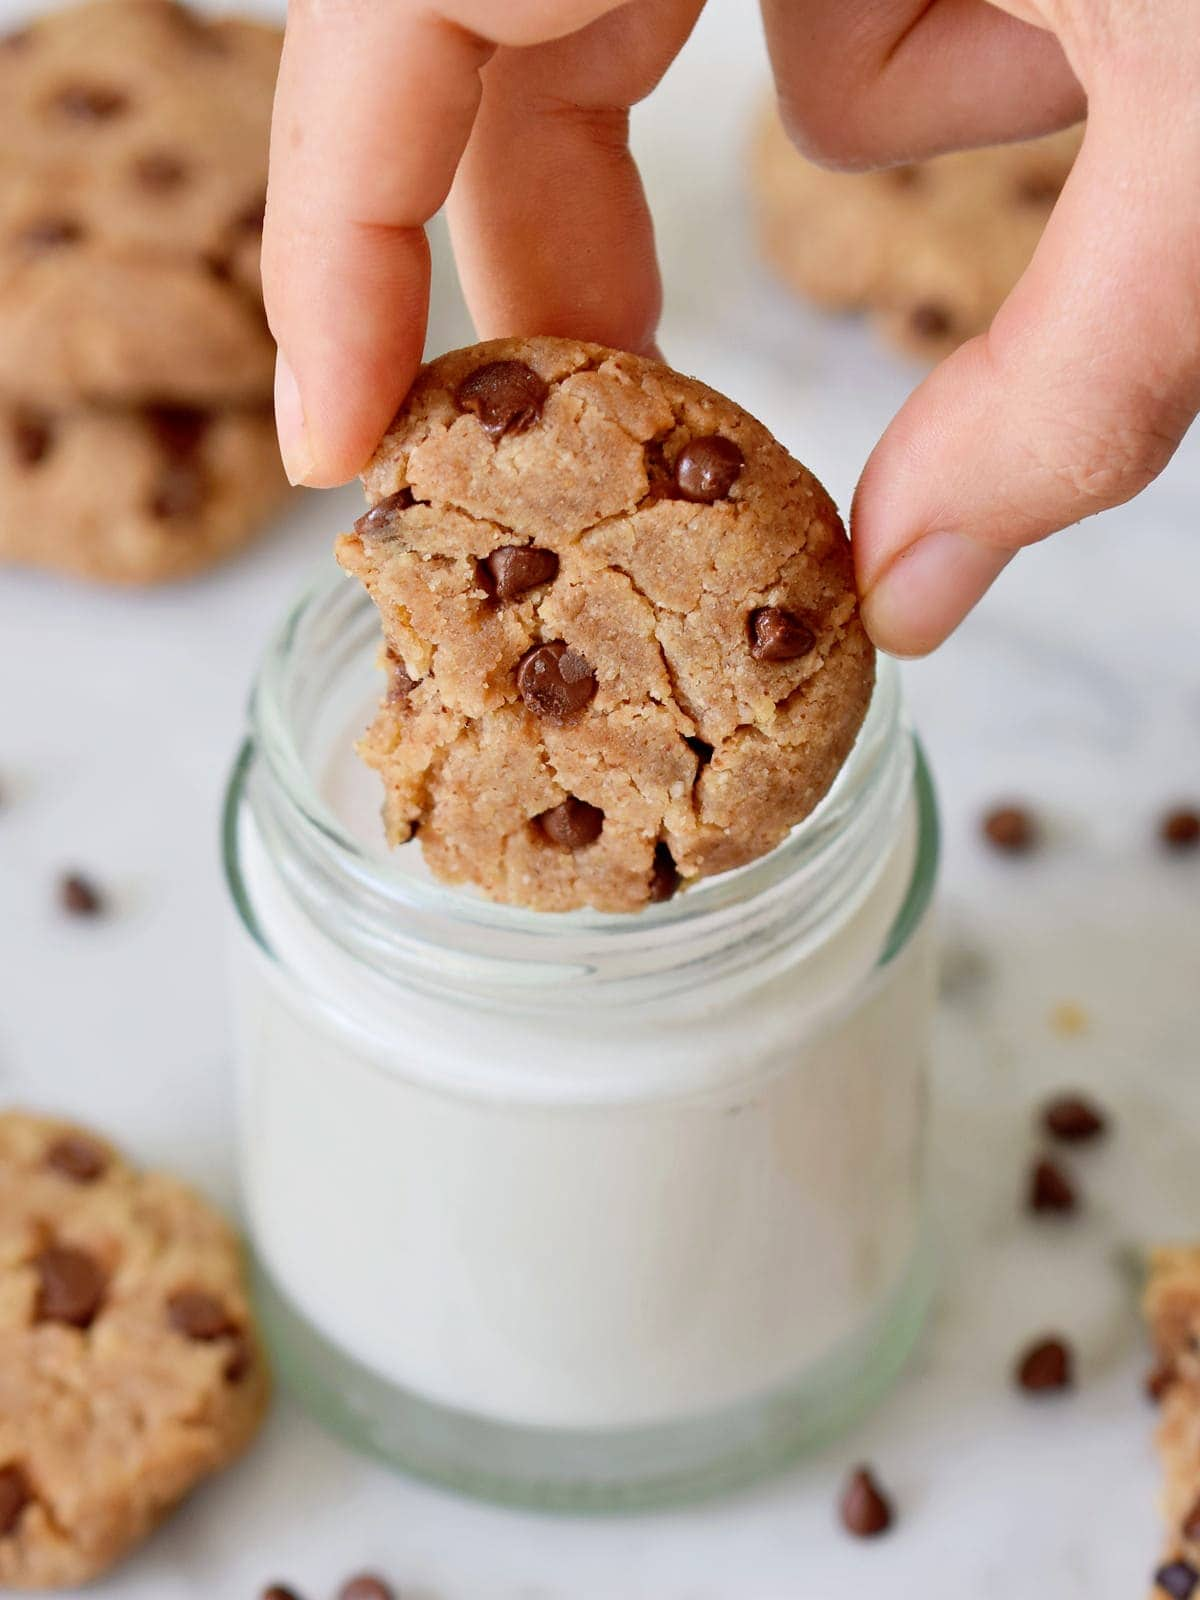 hand holding a cookie with chocolate chips over a glass of milk